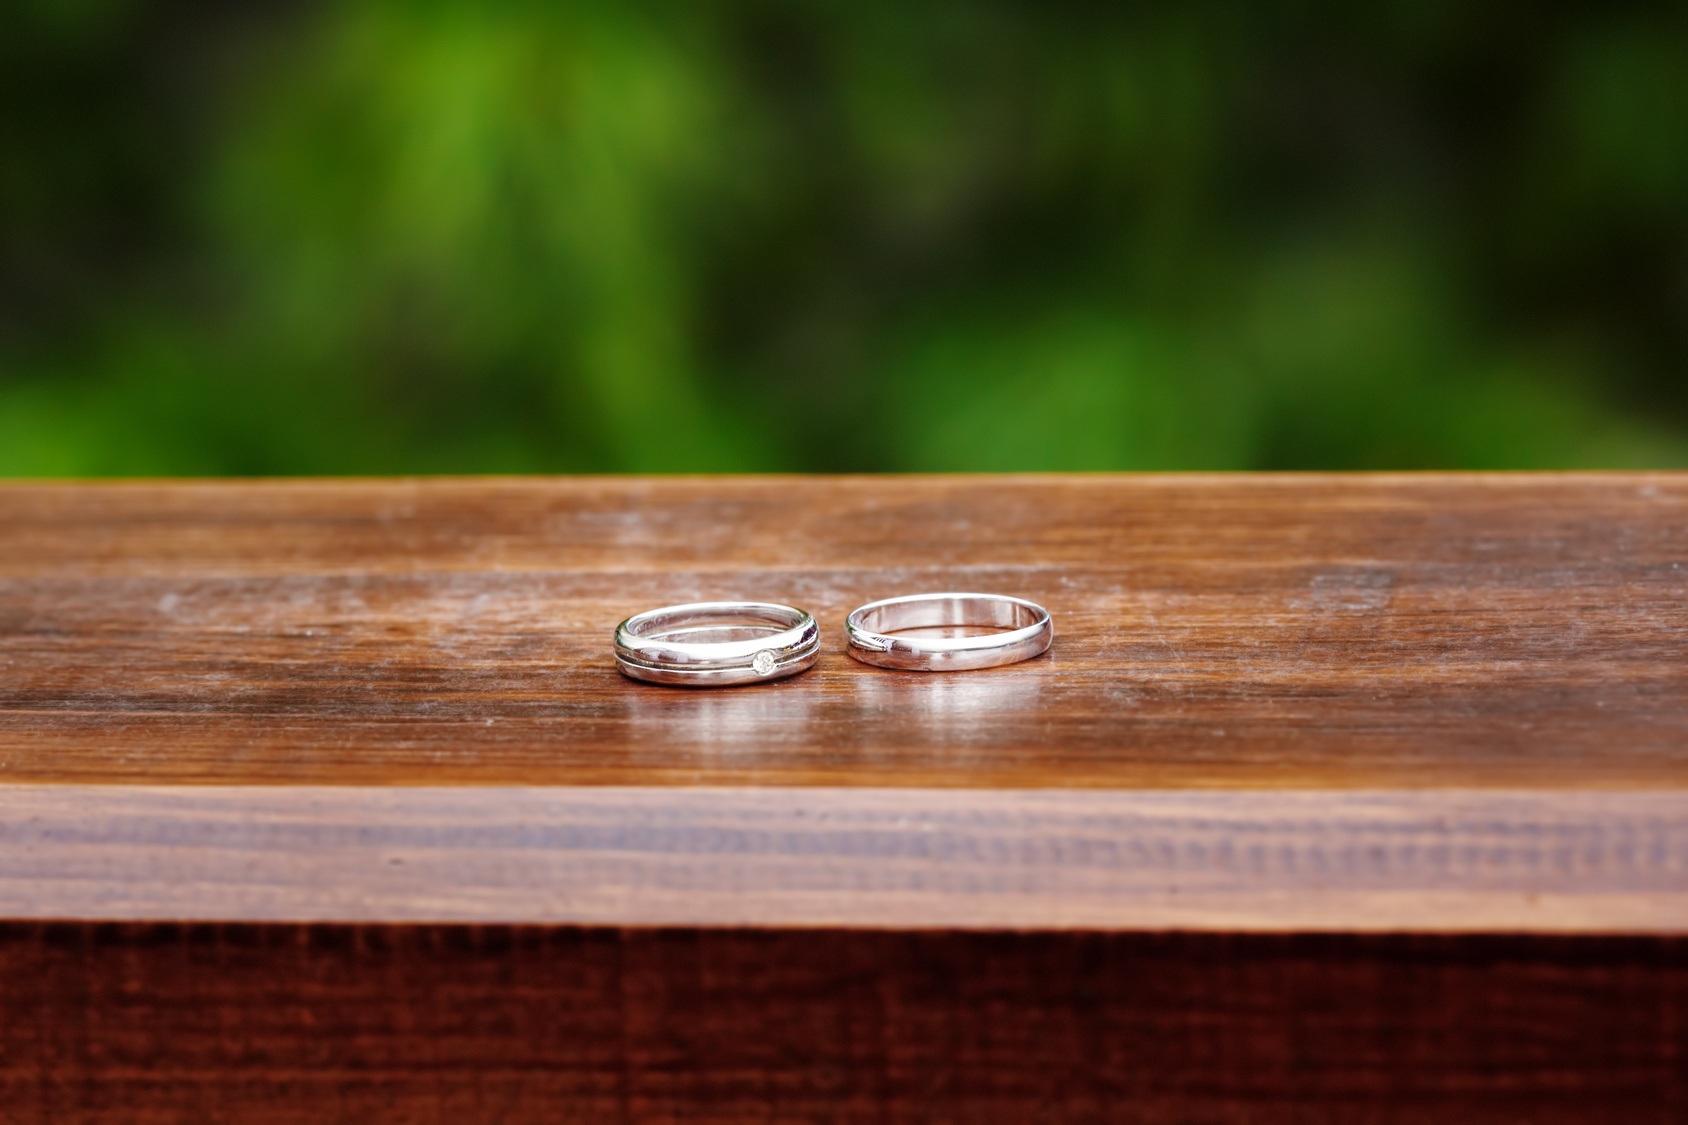 Wedding Engagement Rings Close up on Wood Background. Rustic Style decoration.